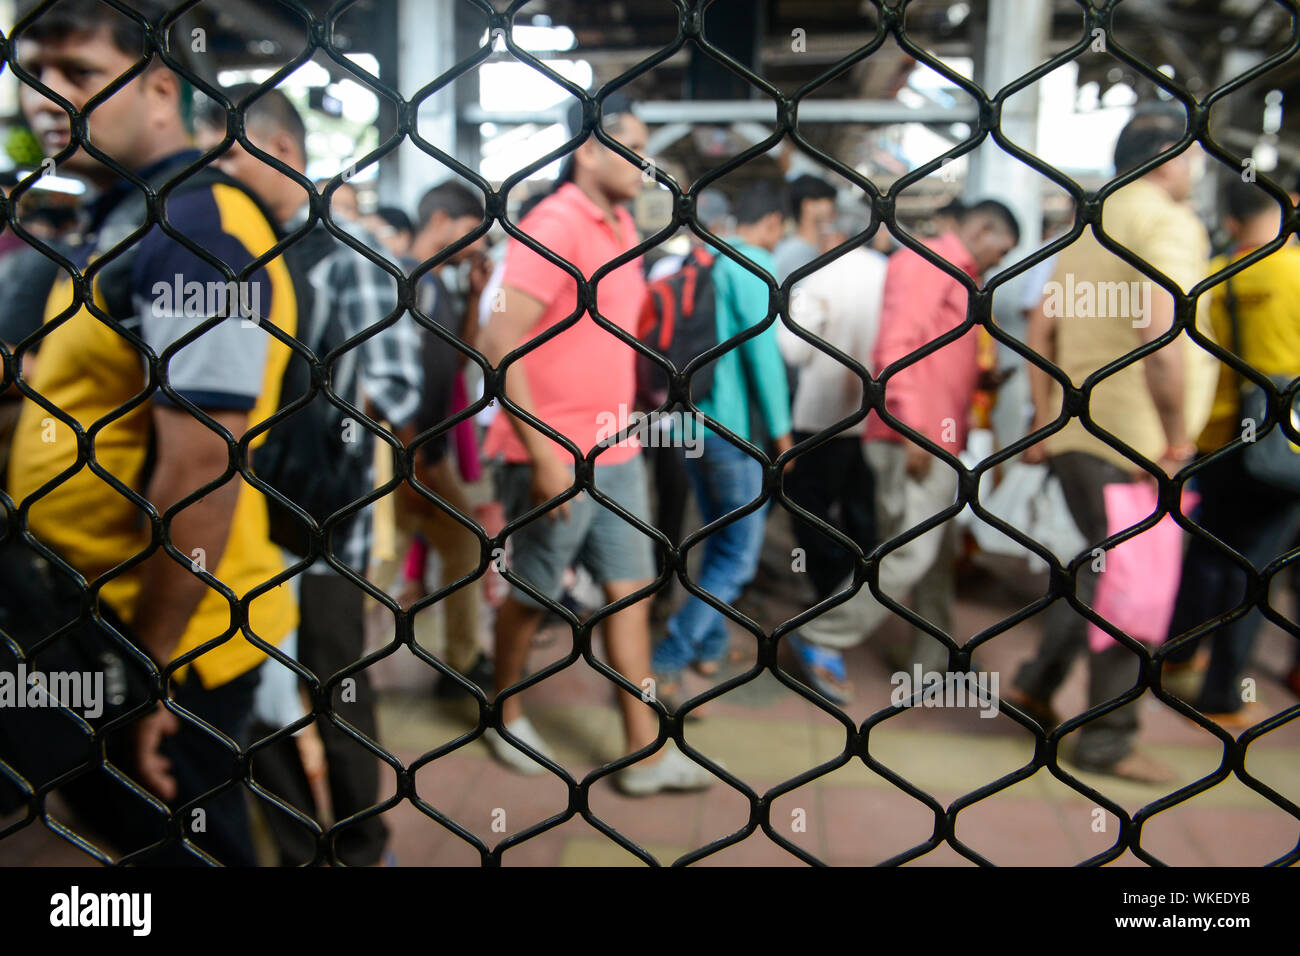 INDIA, Mumbai, suburban railway station of commuter train Western Railway WR, commuter travel between suburbans and city centre, view from barred train window Stock Photo